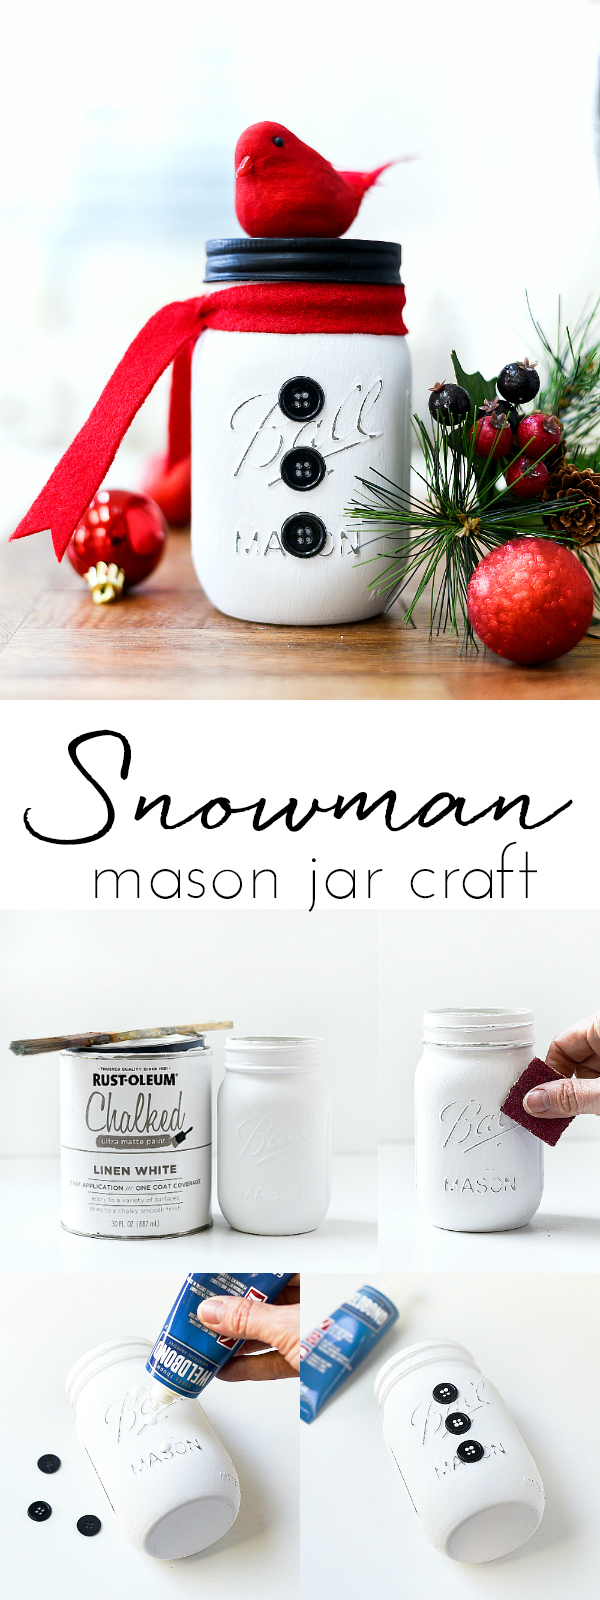 Snowman Mason Jars - Mason Jar Crafts Love #masonjarcrafts